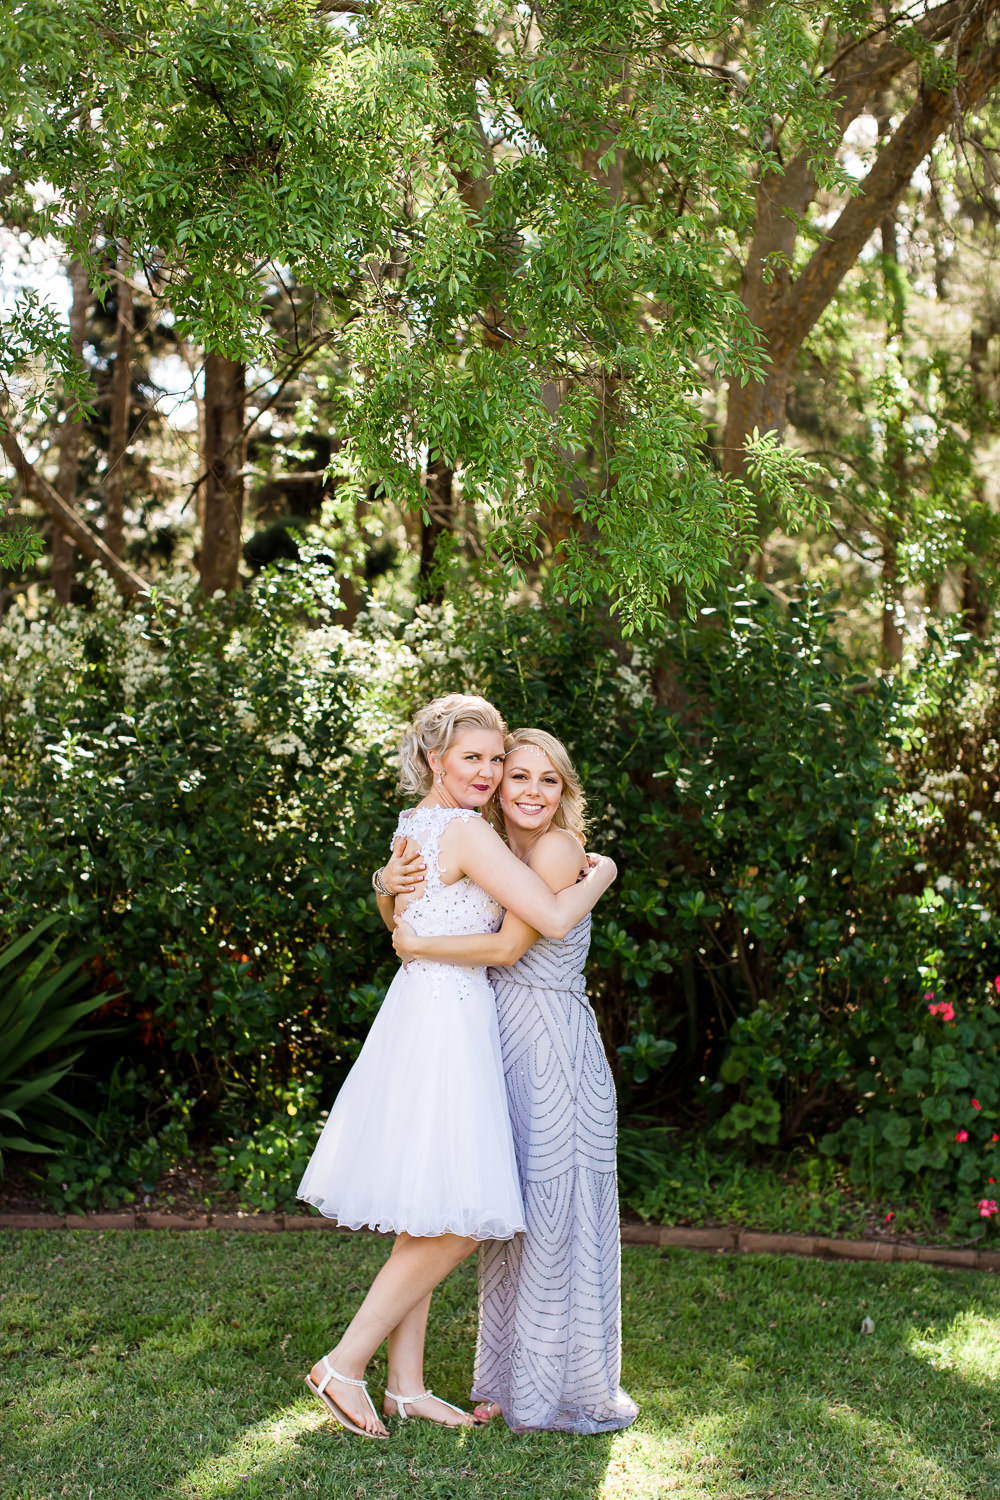 relaxed-wedding-non-traditional-wedding-gemma-clarke-phtography-australian-wedding-48